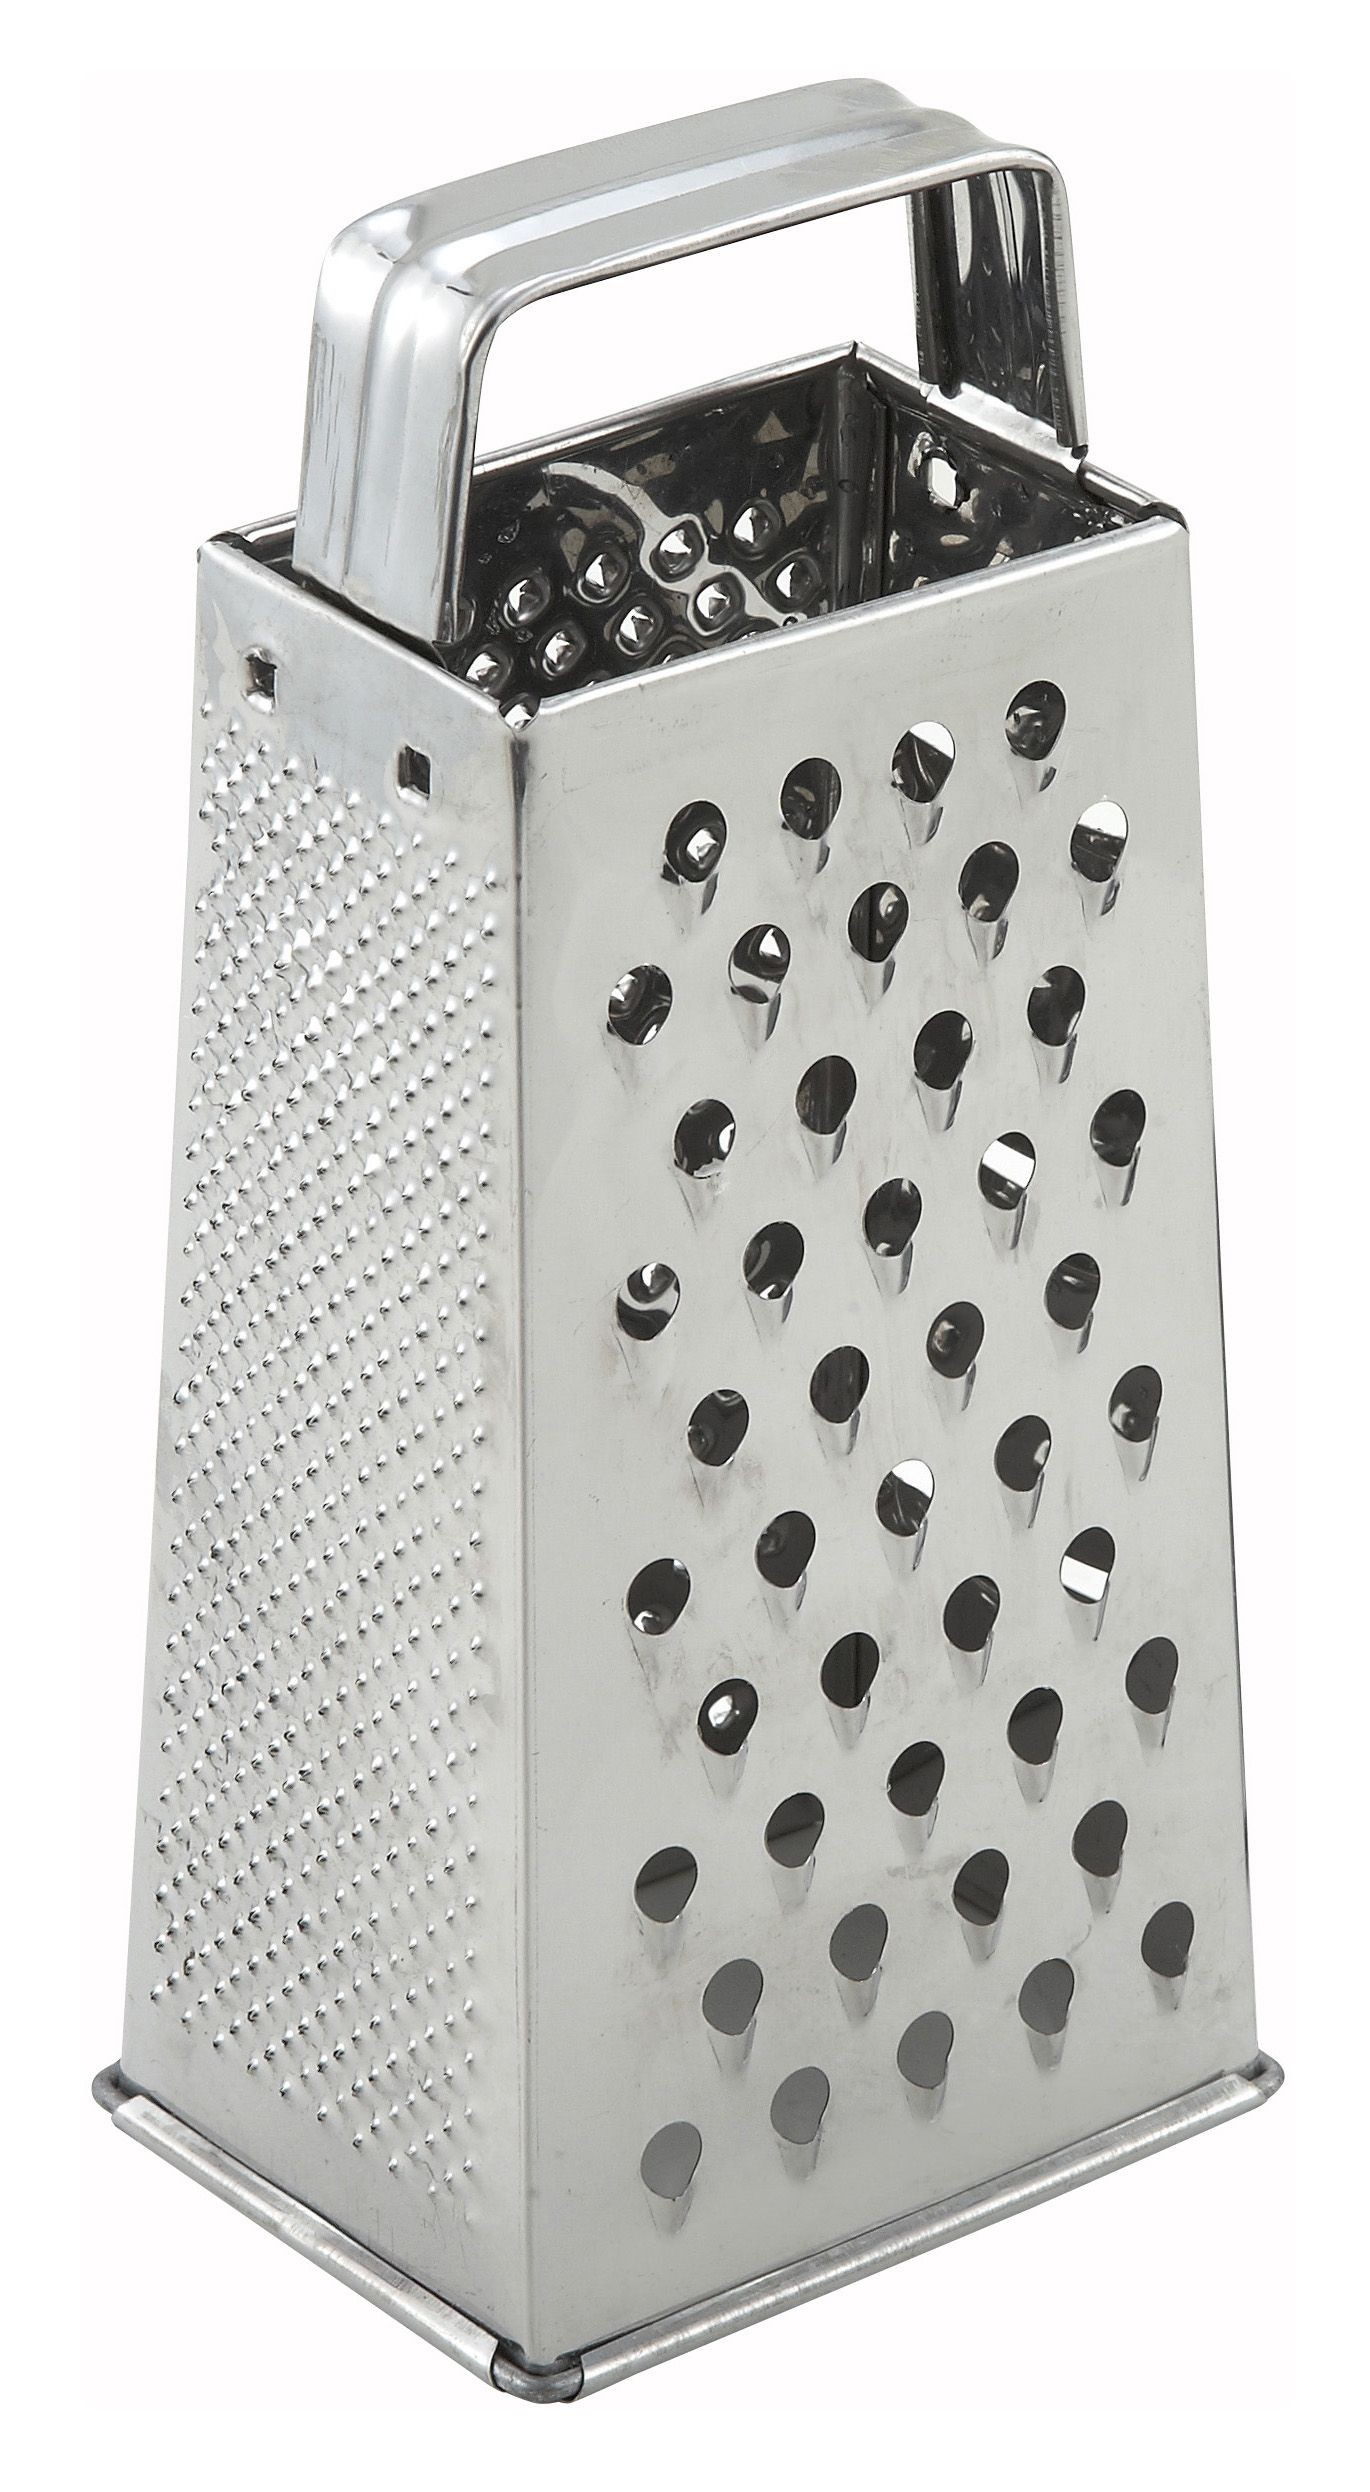 Stainless Steel Tapered Grater With Handle - 4 X 3 X 9